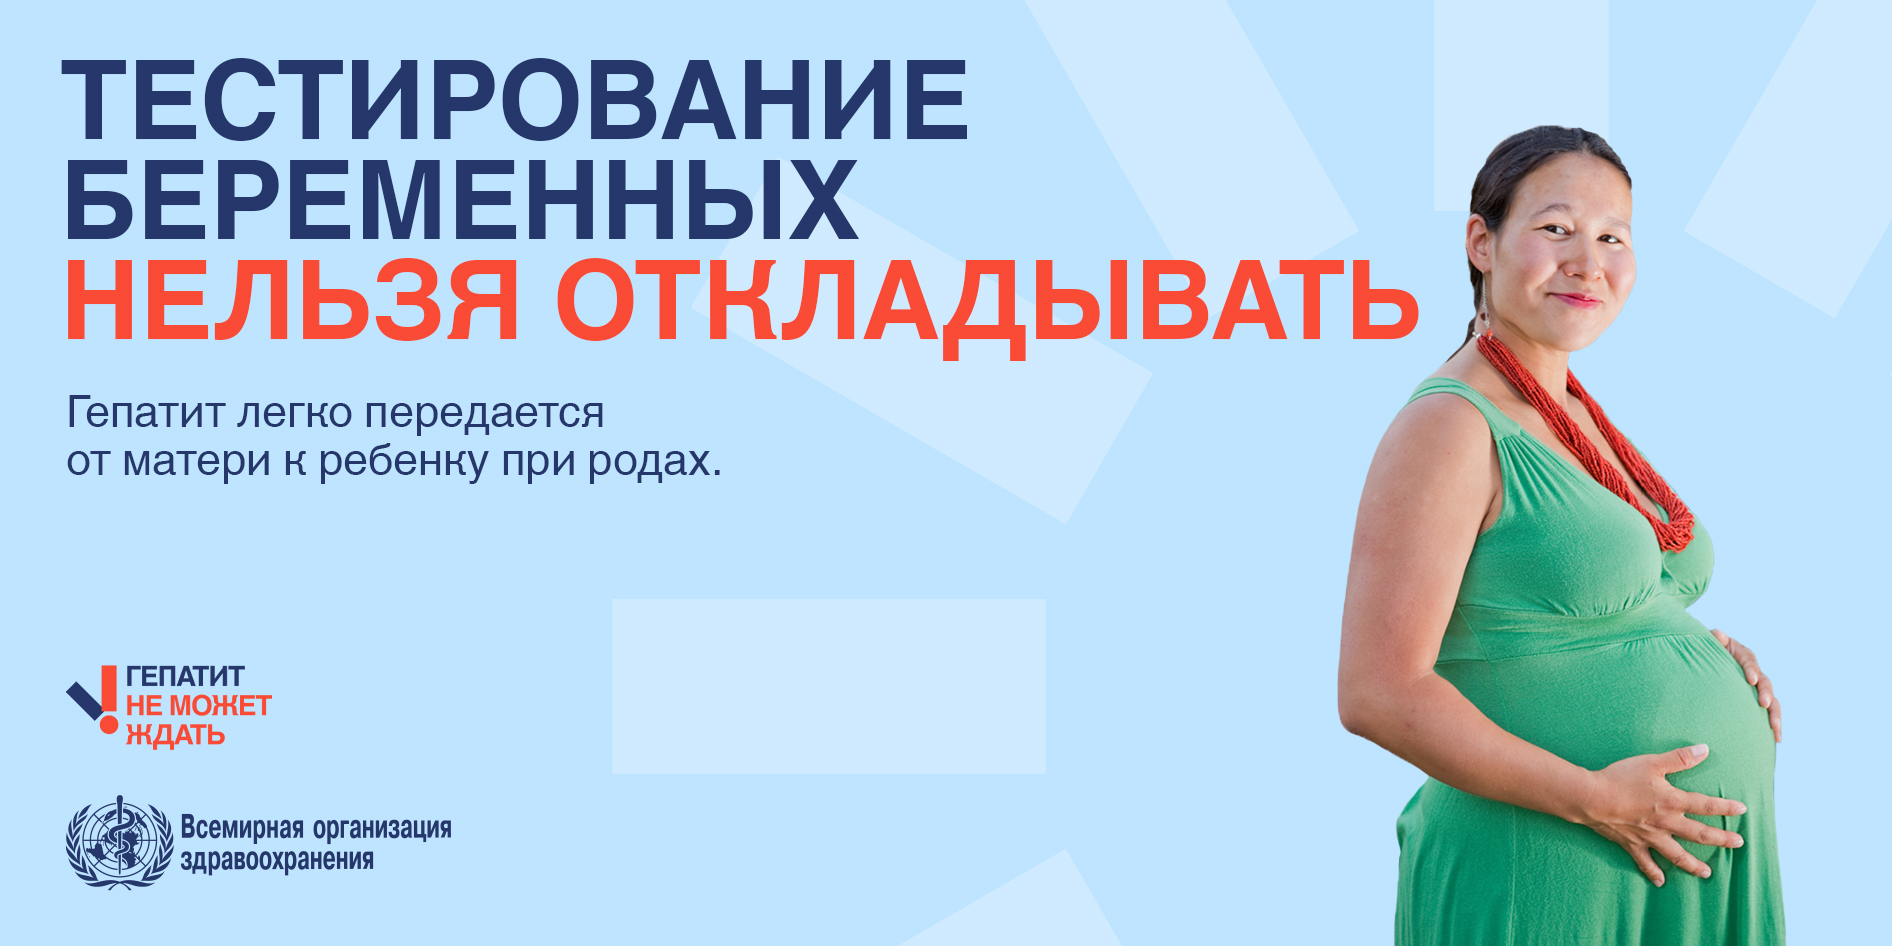 https://www.who.int/images/default-source/who-campaigns/world-hepatitis-day/who-whd-smtiles-ru-3.jpg?sfvrsn=cca5d898_36